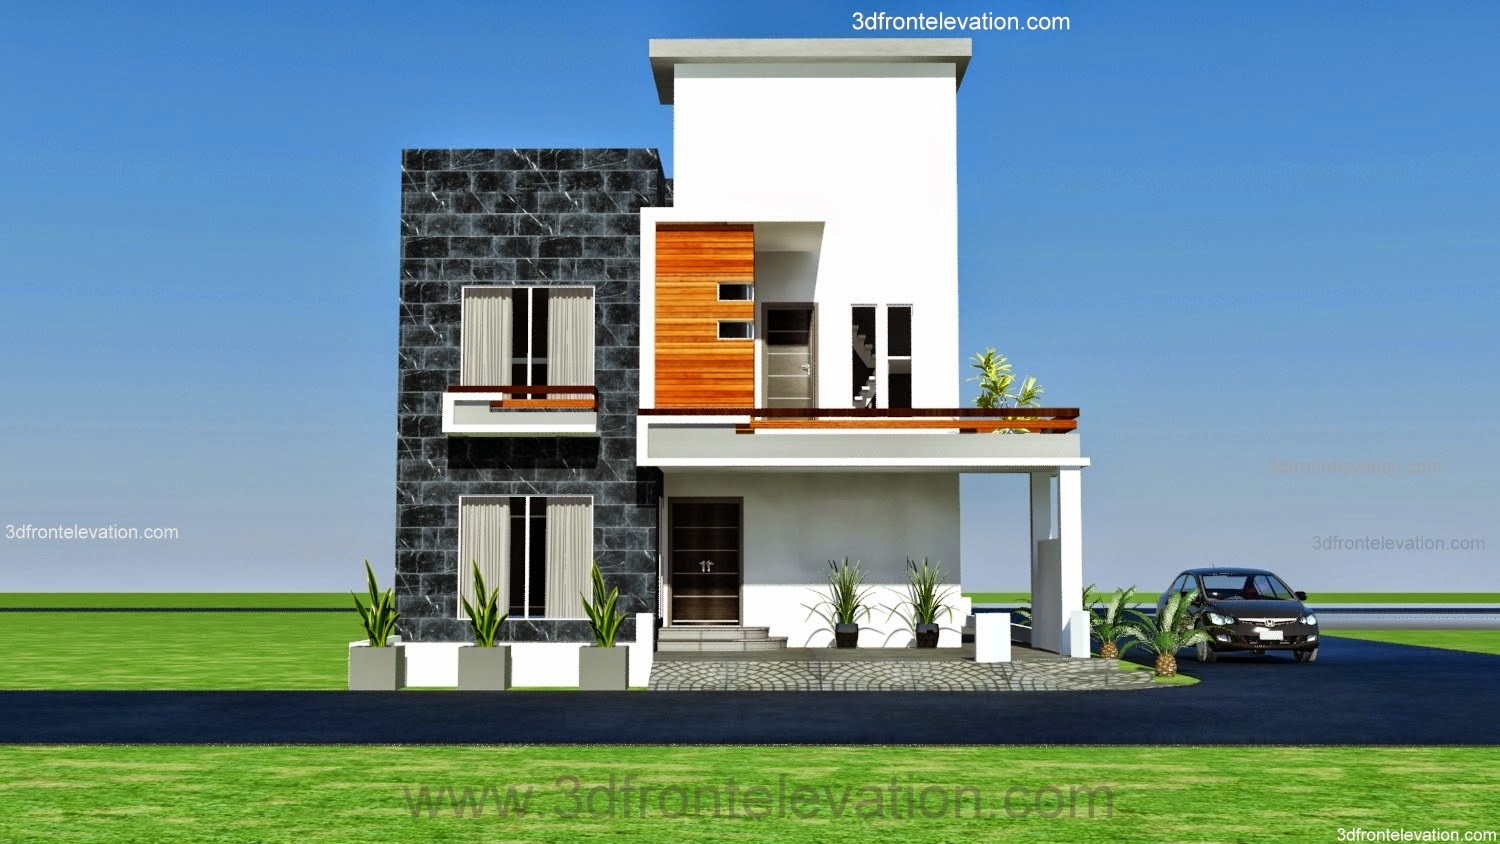 House plans and design architectural design of 10 marla for Architectural design house plans